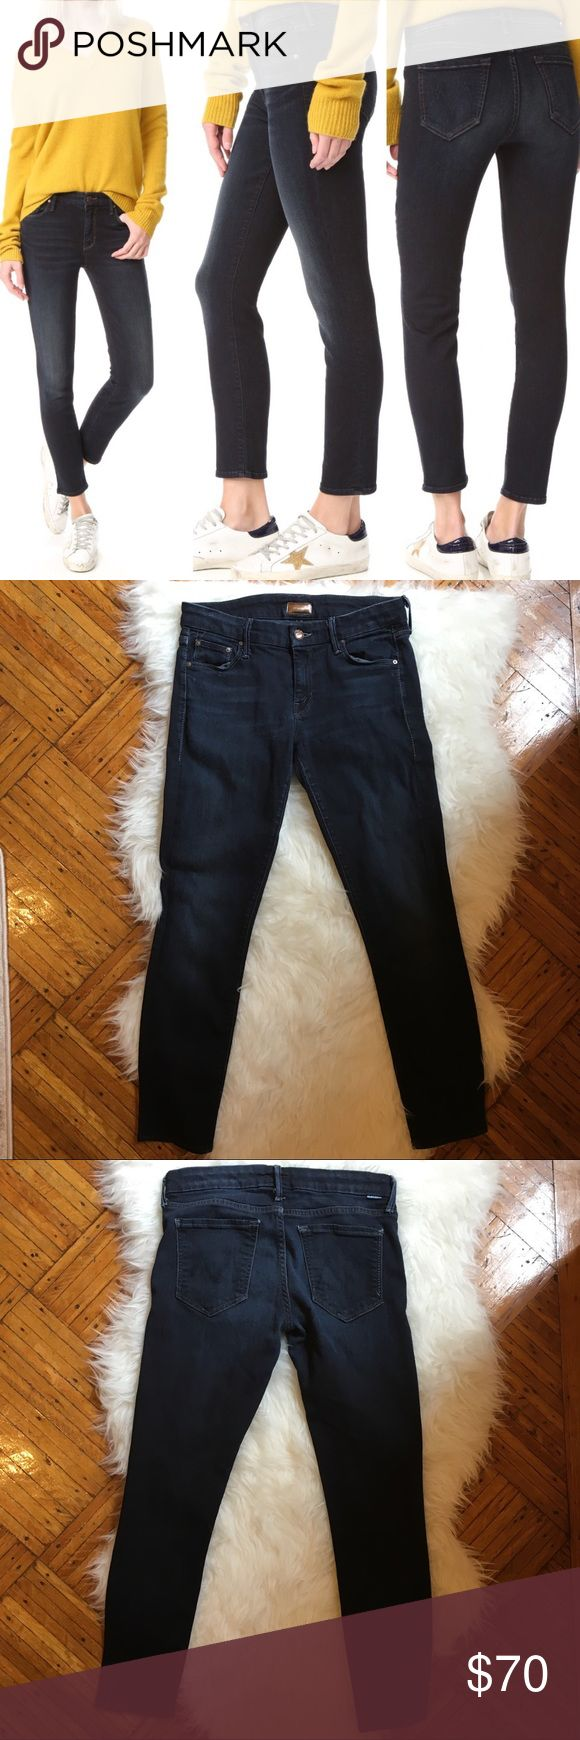 """MOTHER The Cropped Looker Jeans Good condition, some wear on the crotch area. Dark wash called """"coffee, tea, or me?"""" Ankle length. Originally $205 14 inches across the waist 26 inch inseam 8 inch rise MOTHER Jeans Skinny"""